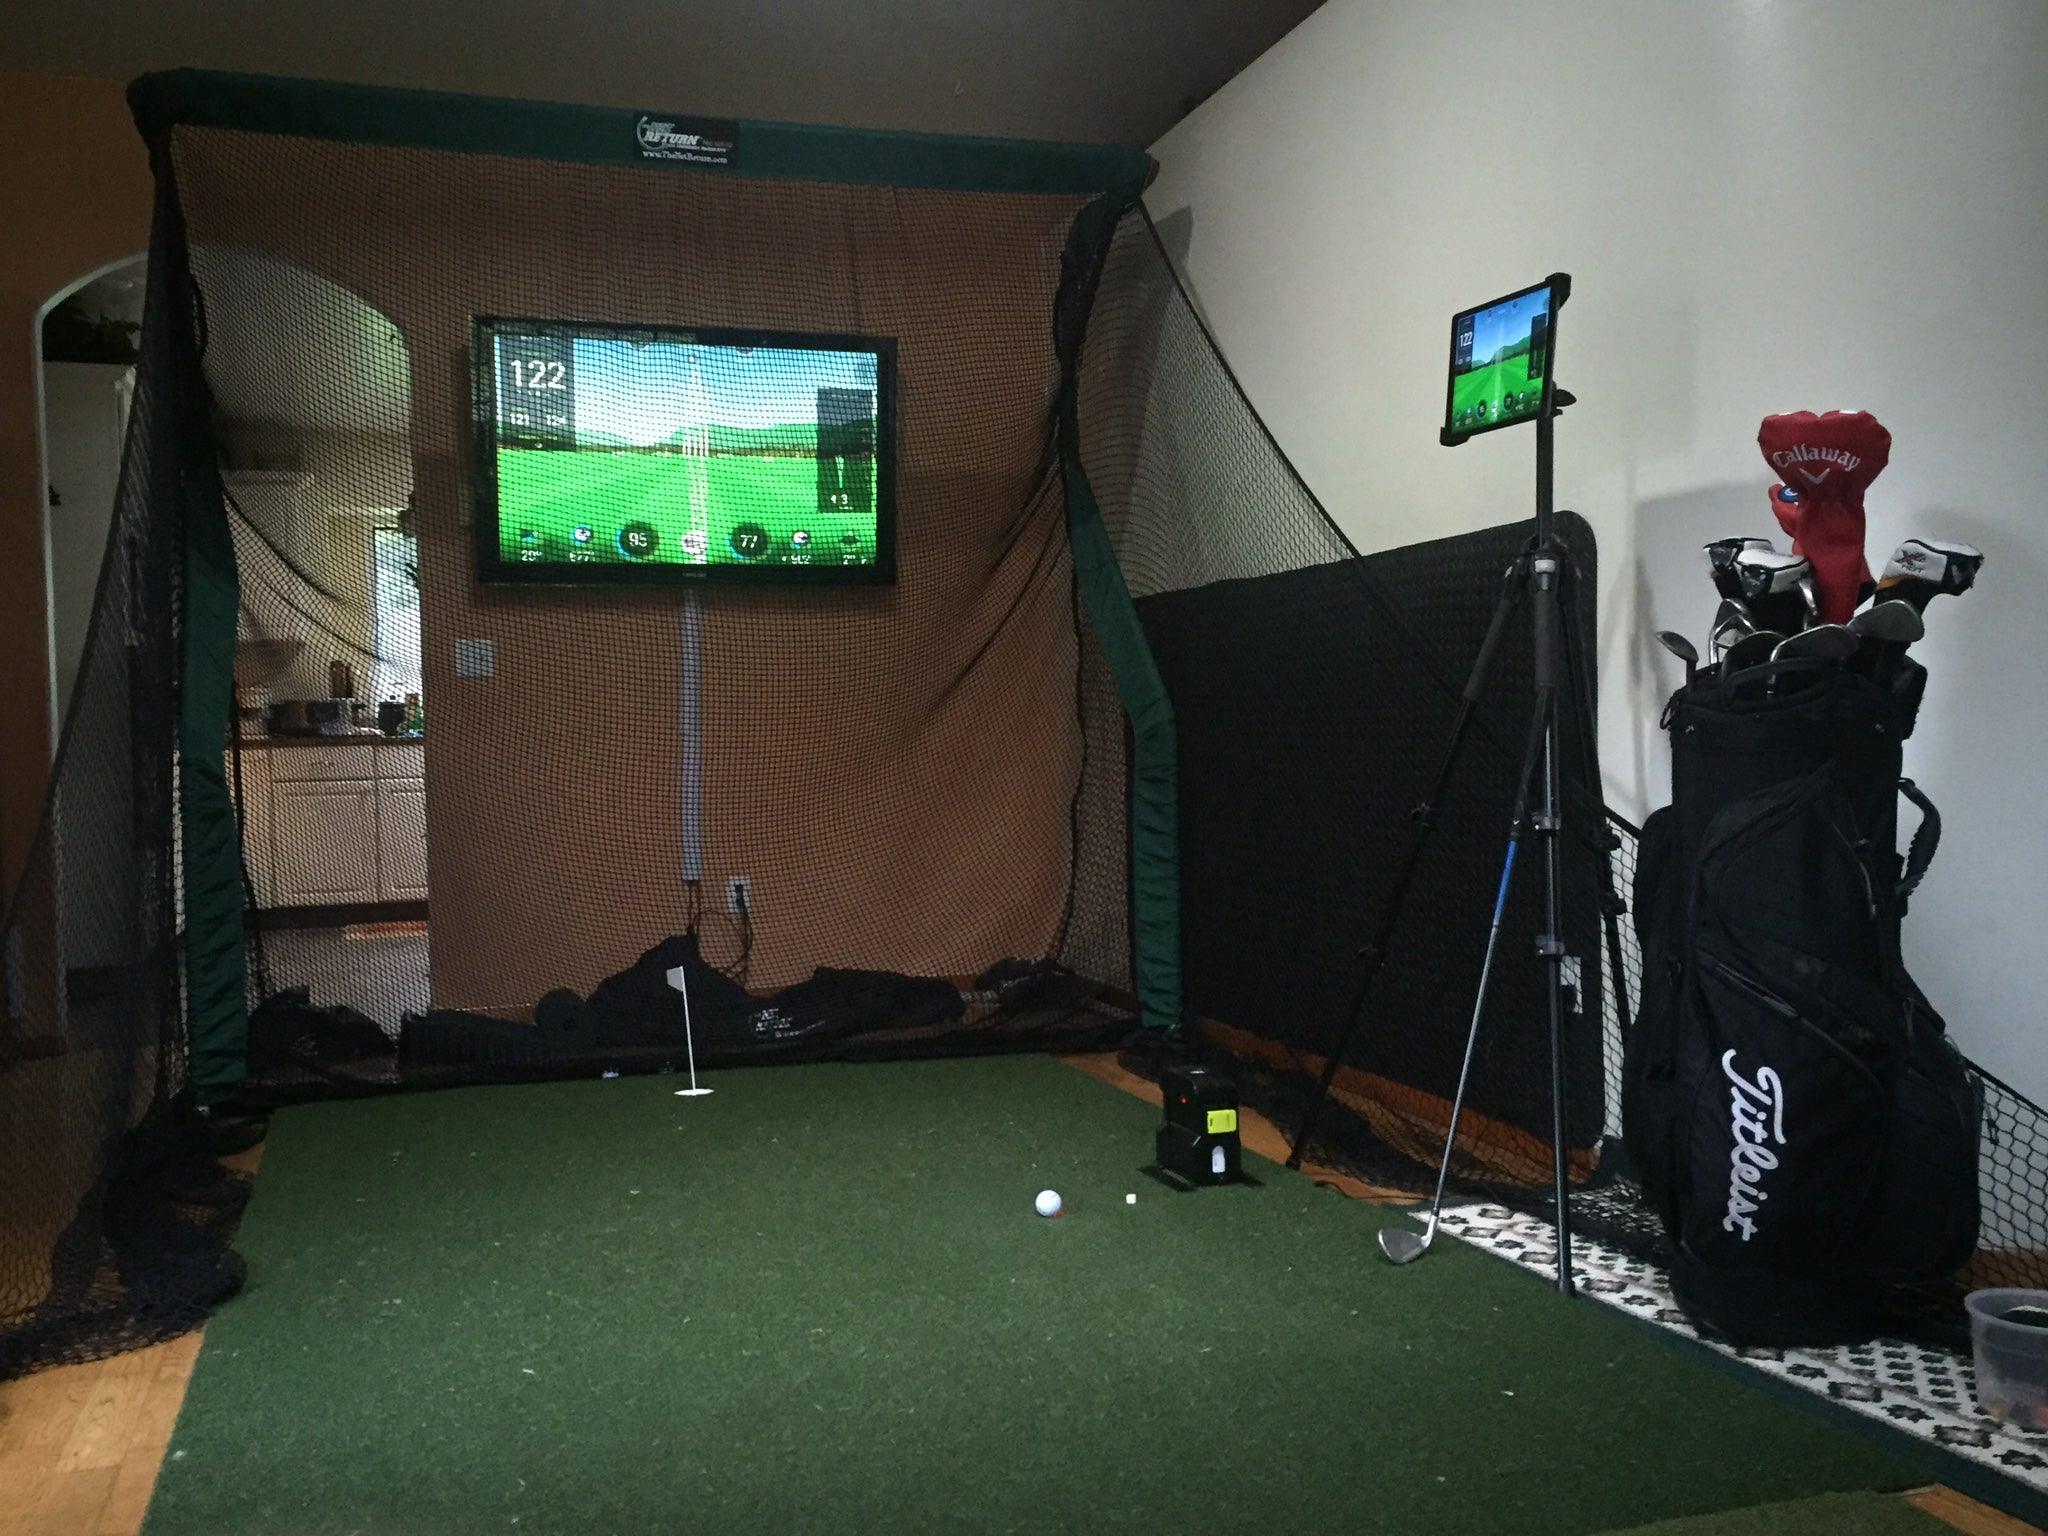 Roger Schultz Indoor Golf Studio